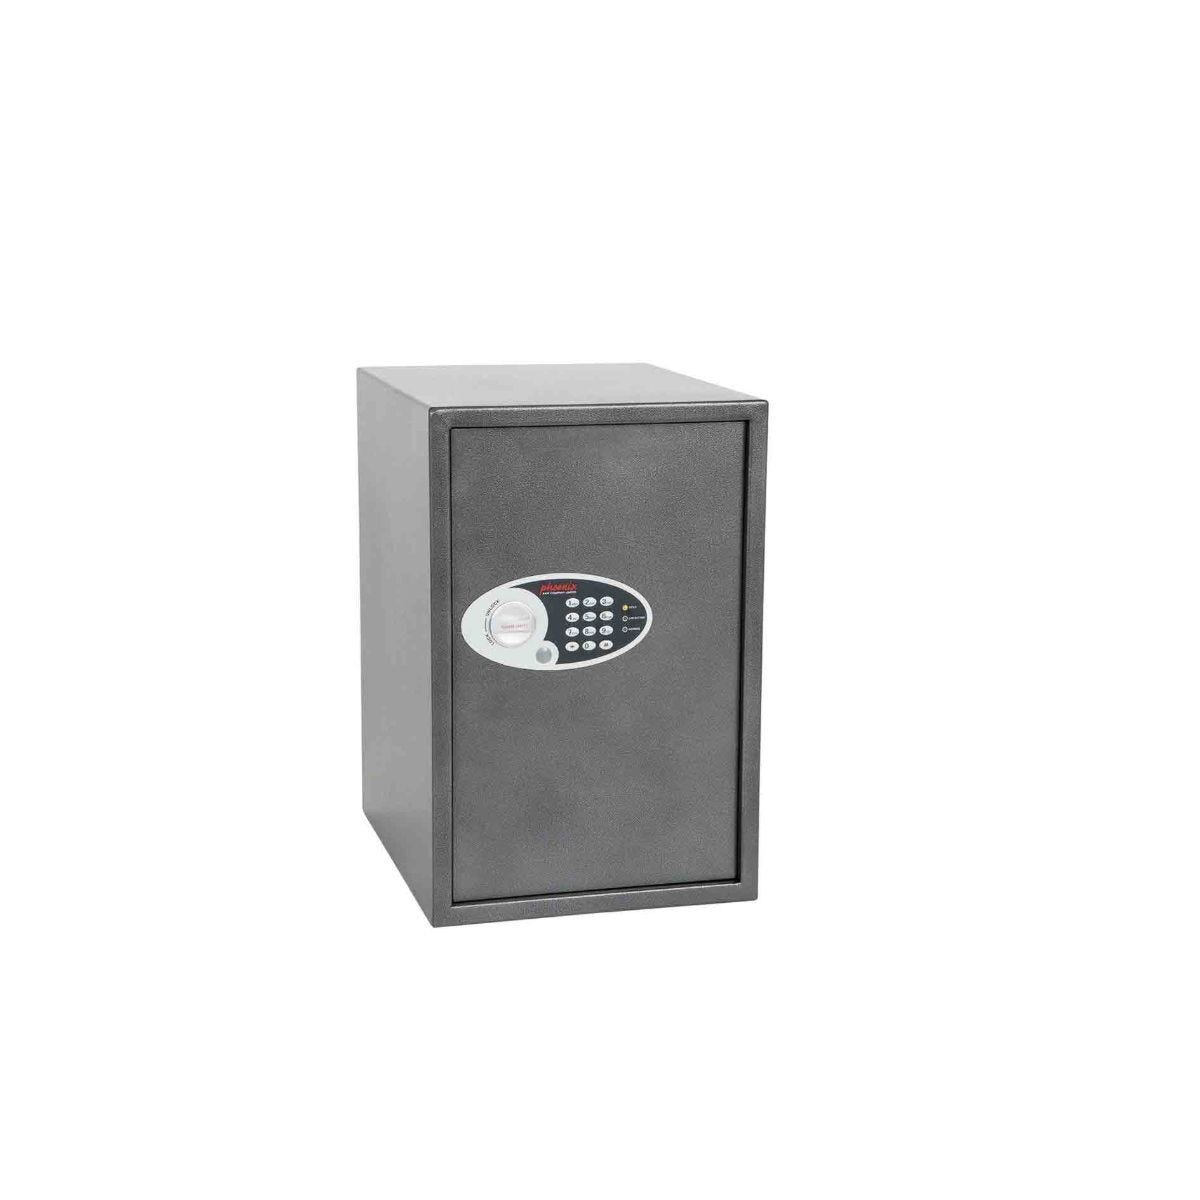 Phoenix Vela Home and Office Security Safe with Electronic Lock Size 5